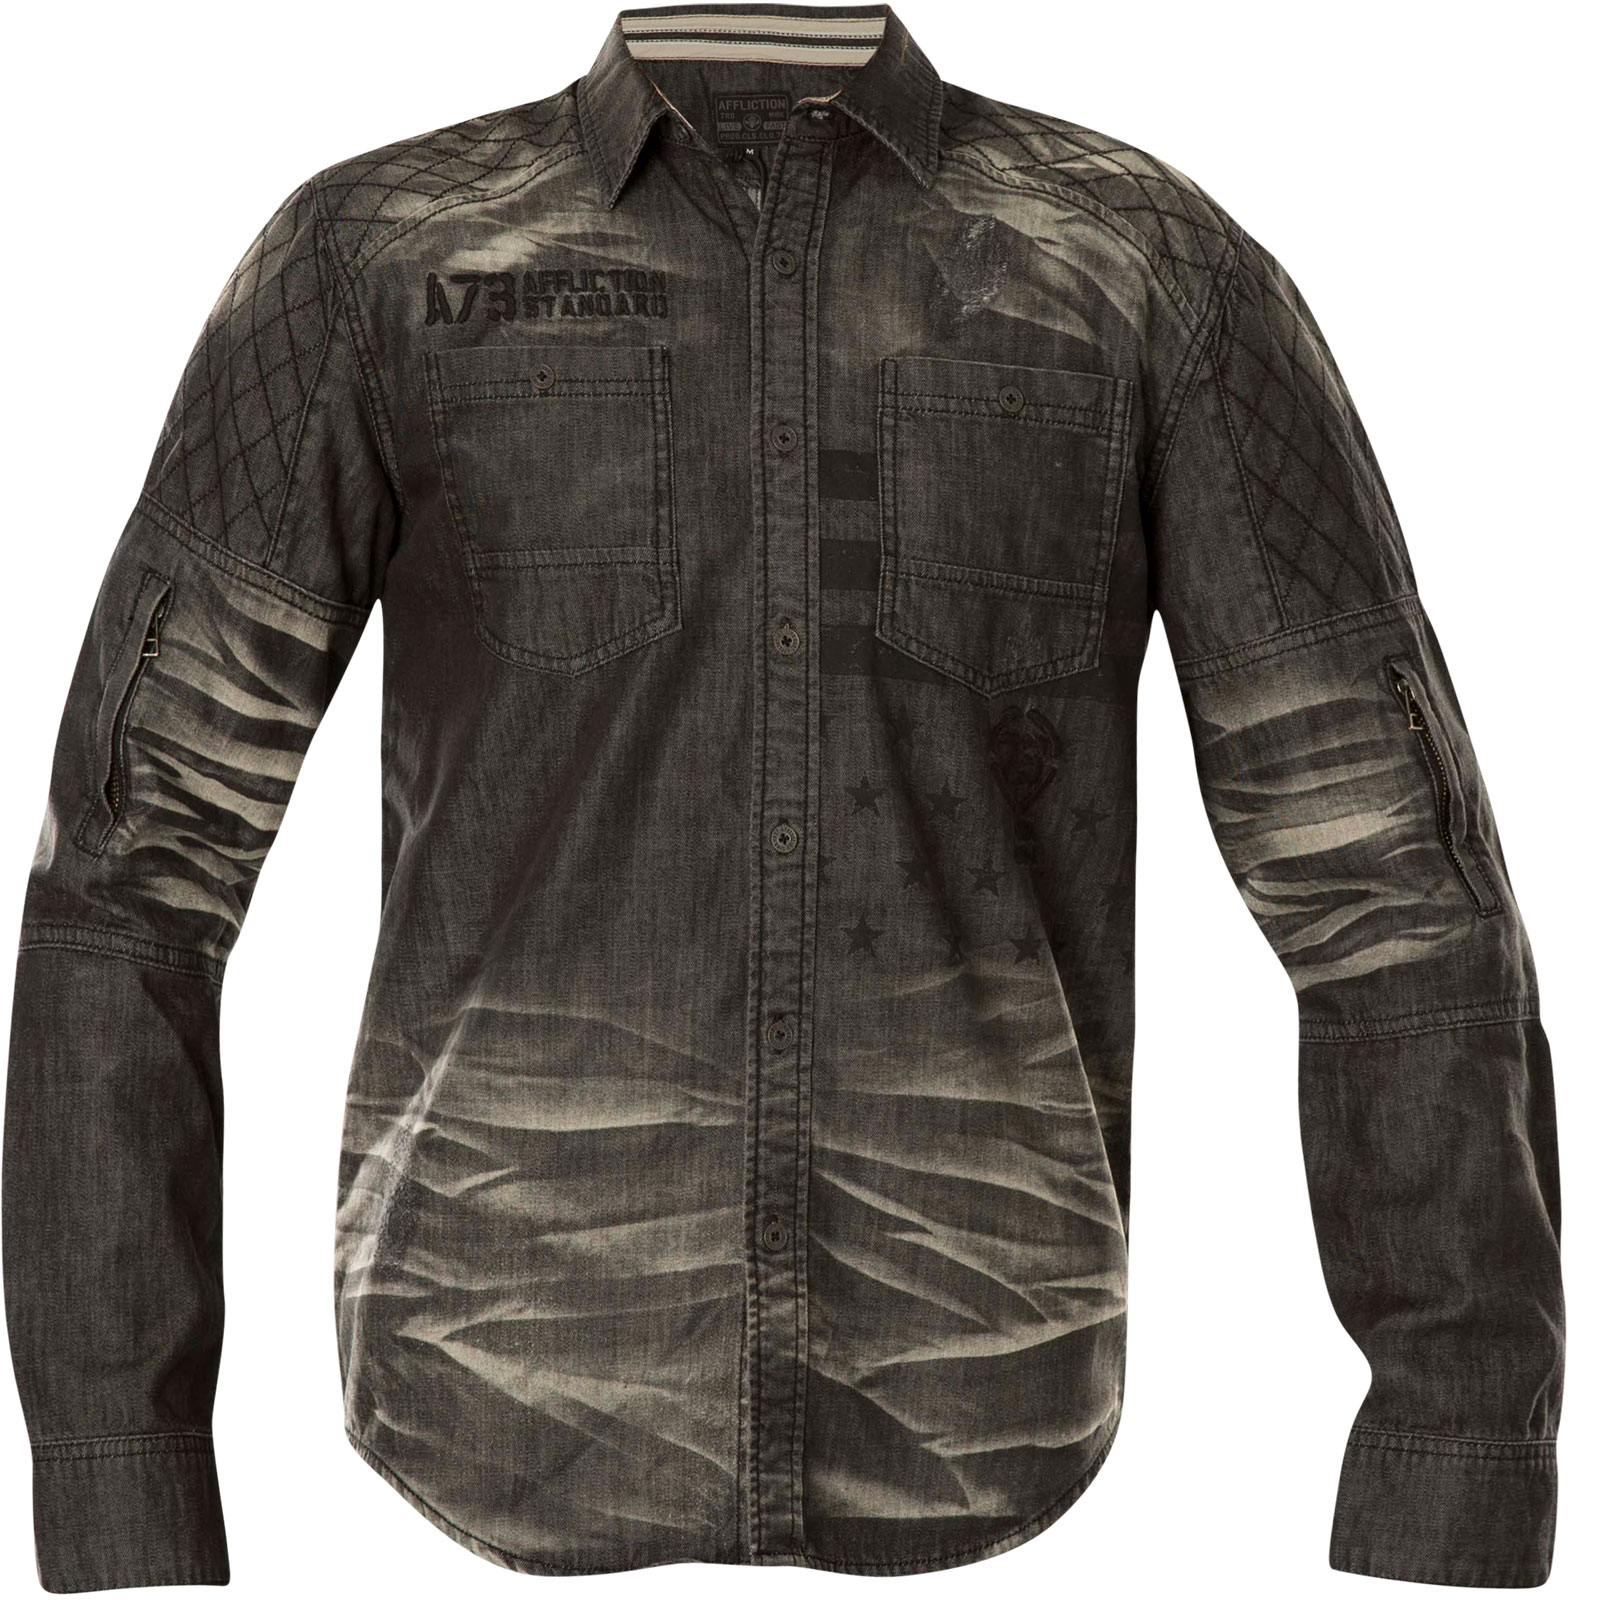 Affliction Denim Shirt Climate Control With A Print And